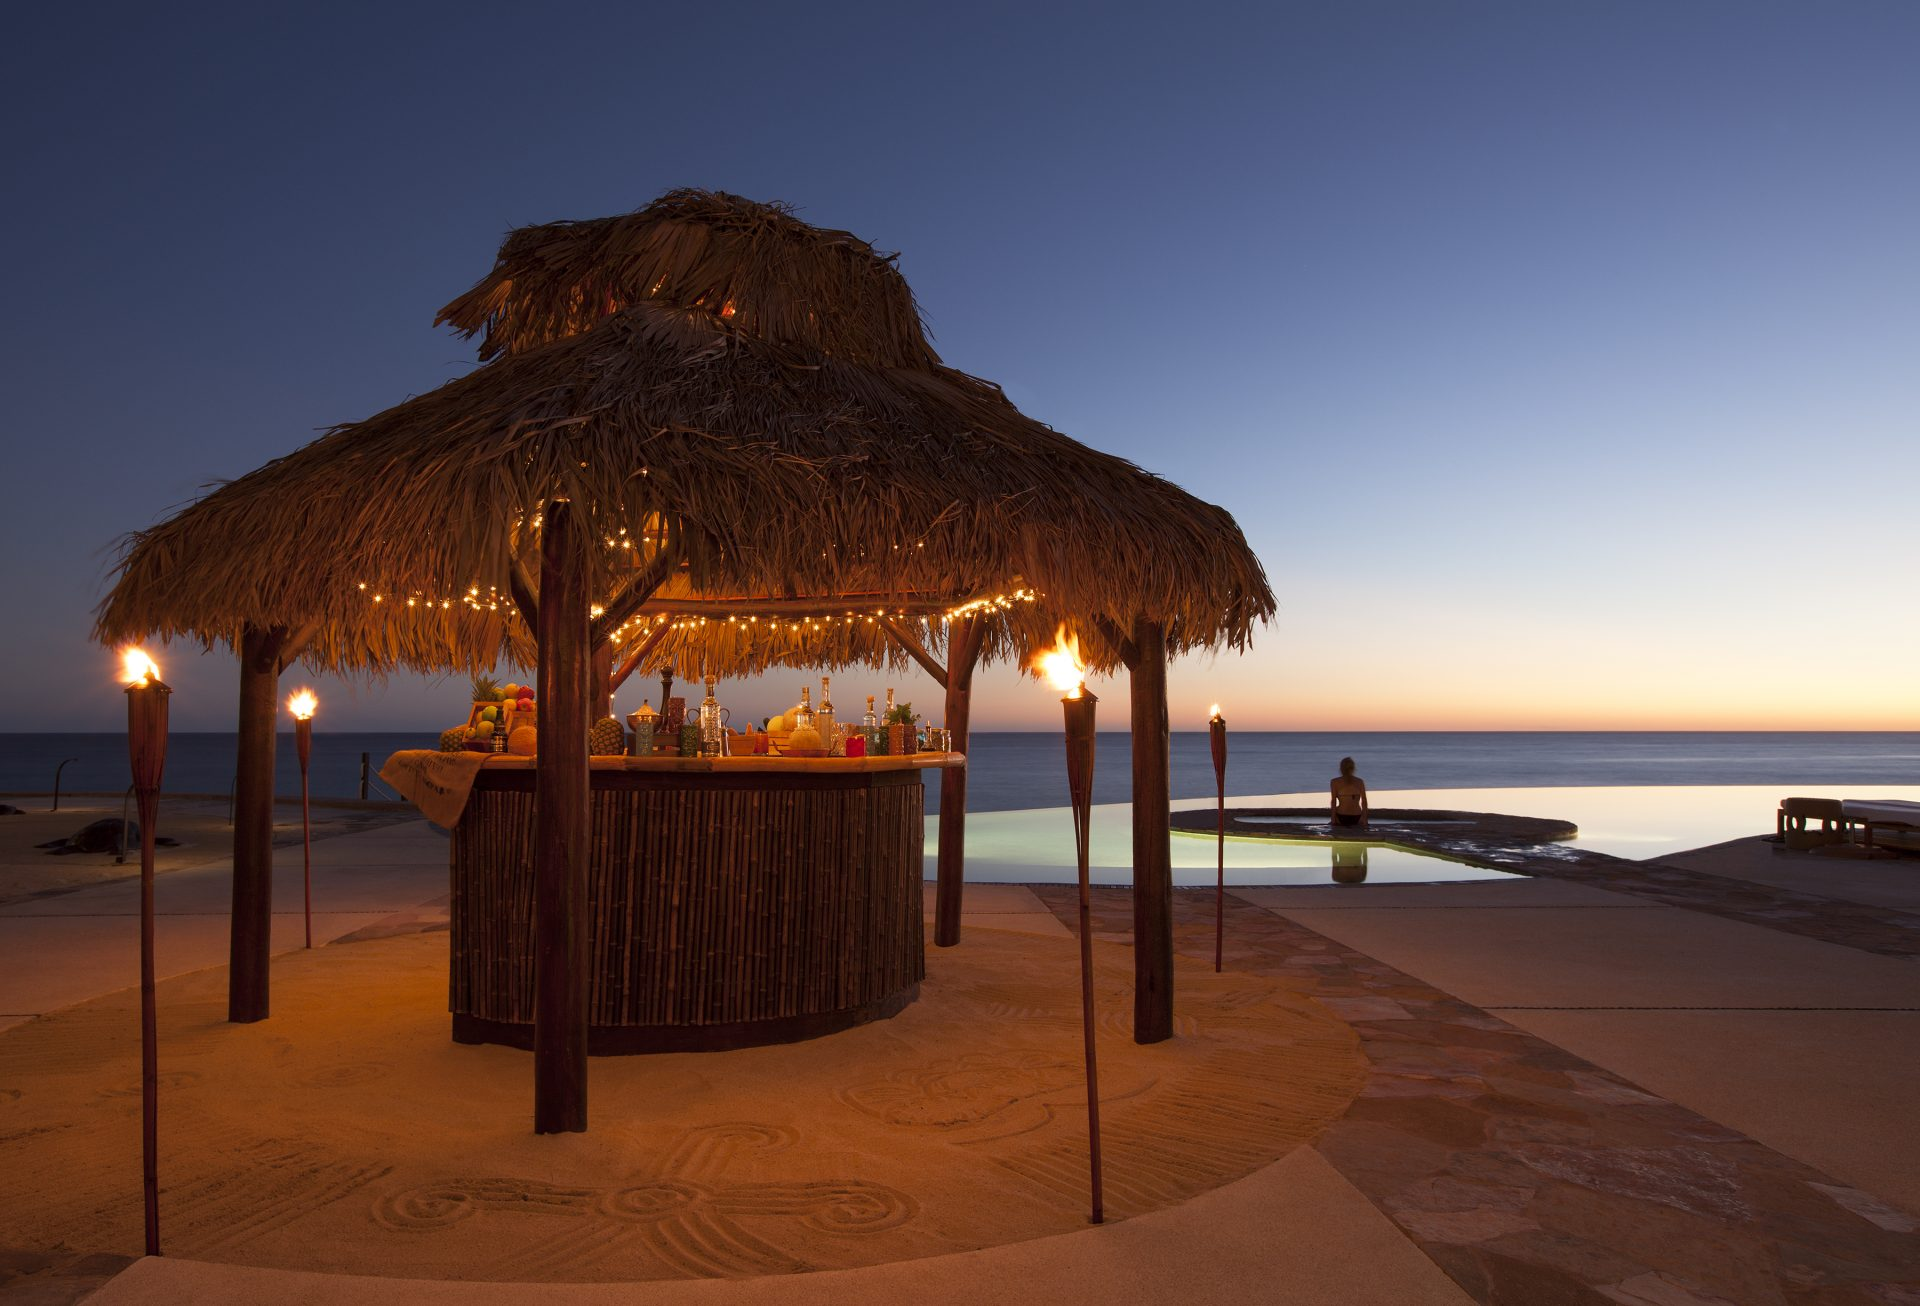 Awesome tiki hut at The Resort at Pedregal